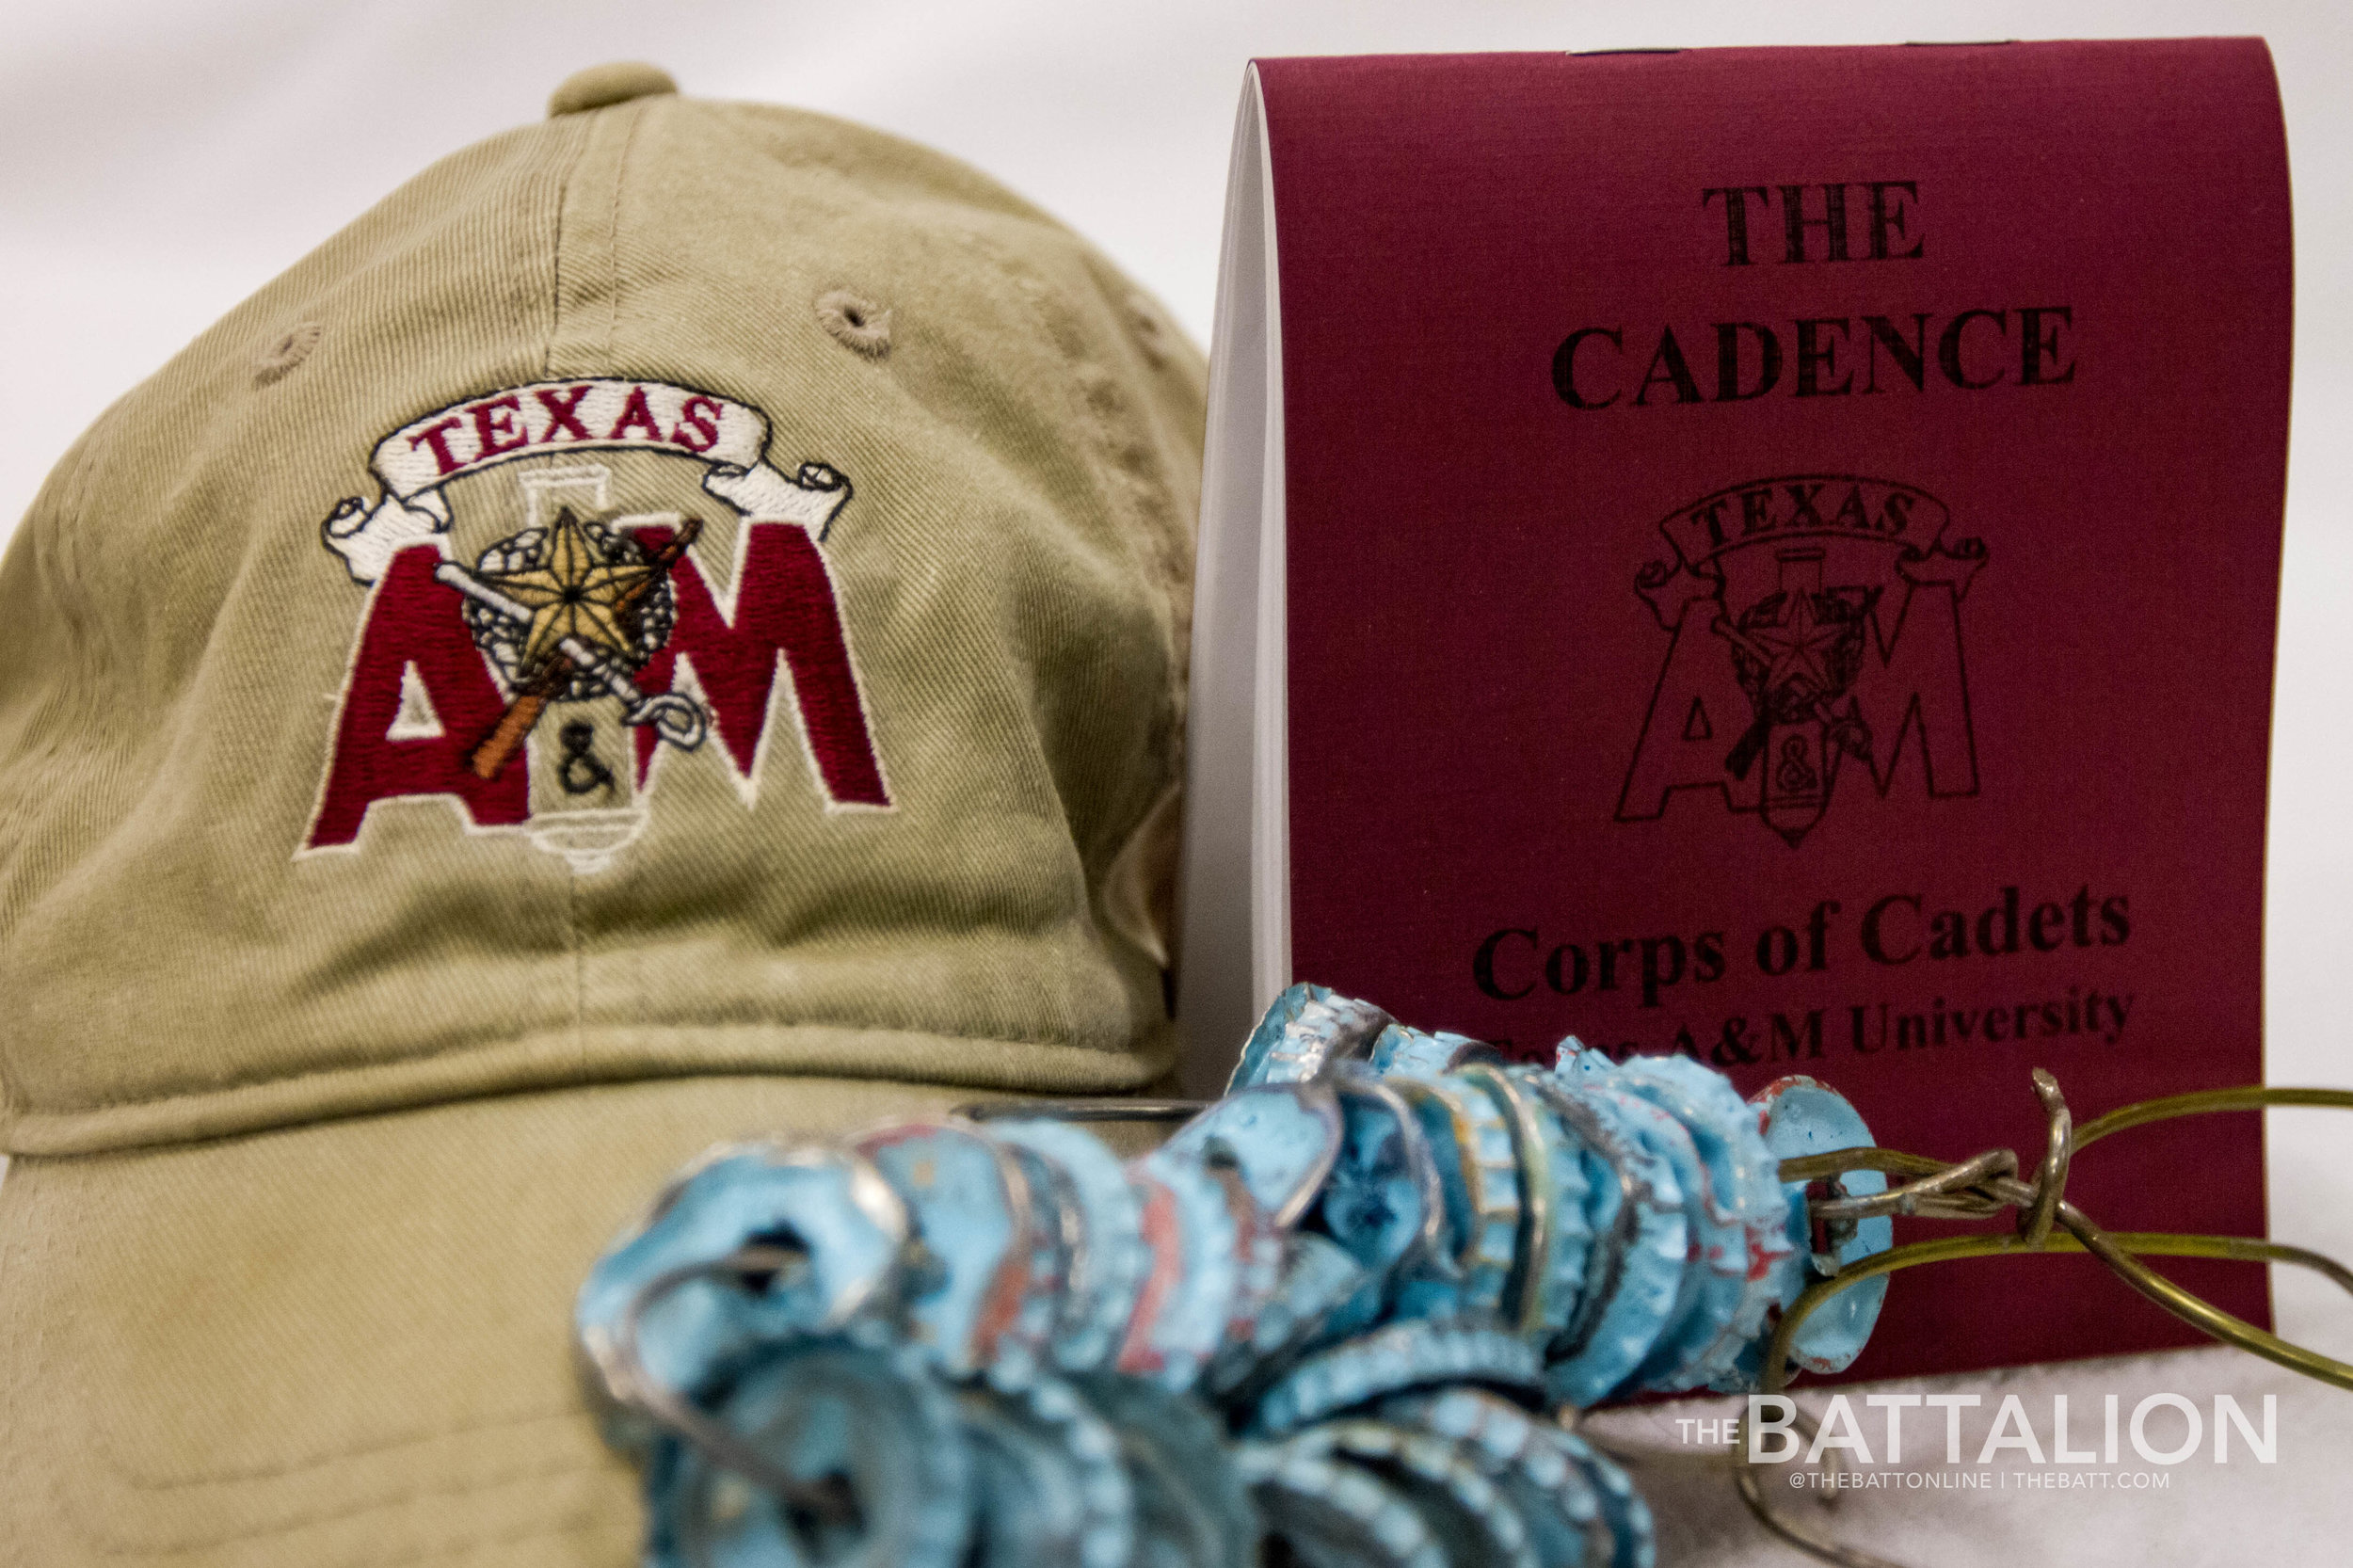 The Cadence, originally authored by Tom Gillis, Class of 1942, is one of the first items given to a fish at the beginning of their time in the Corps of Cadets. It contains information on cadet life, traditions and commonly-used terms.   Photo by Meredith Seaver.